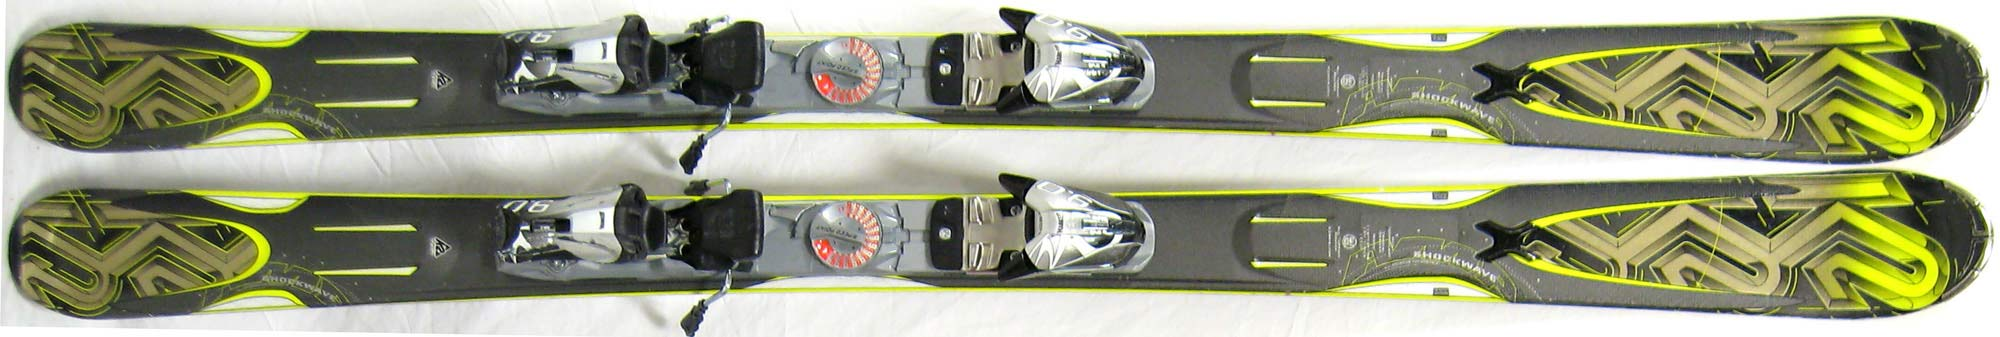 Topsheets of 2011 K2 Amp Shockwave Skis For Sale